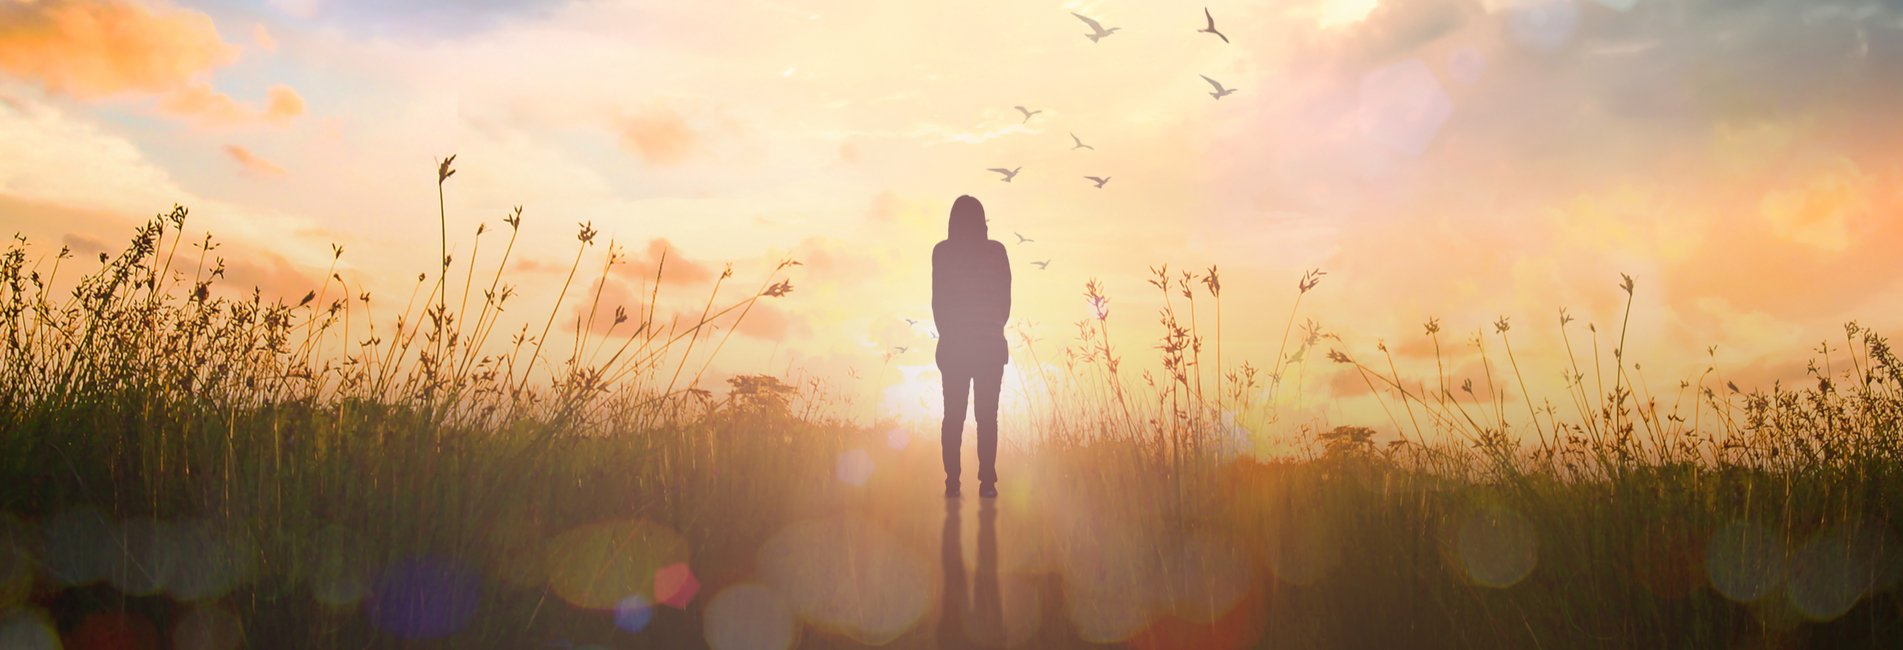 A Safe Haven With Harm Reduction Care Resurgence – A woman stands in a field with tall grass looking into the sunset as she reflects on her recent experience at a safe, inpatient drug rehab without drugs and her newly-founded sobriety.